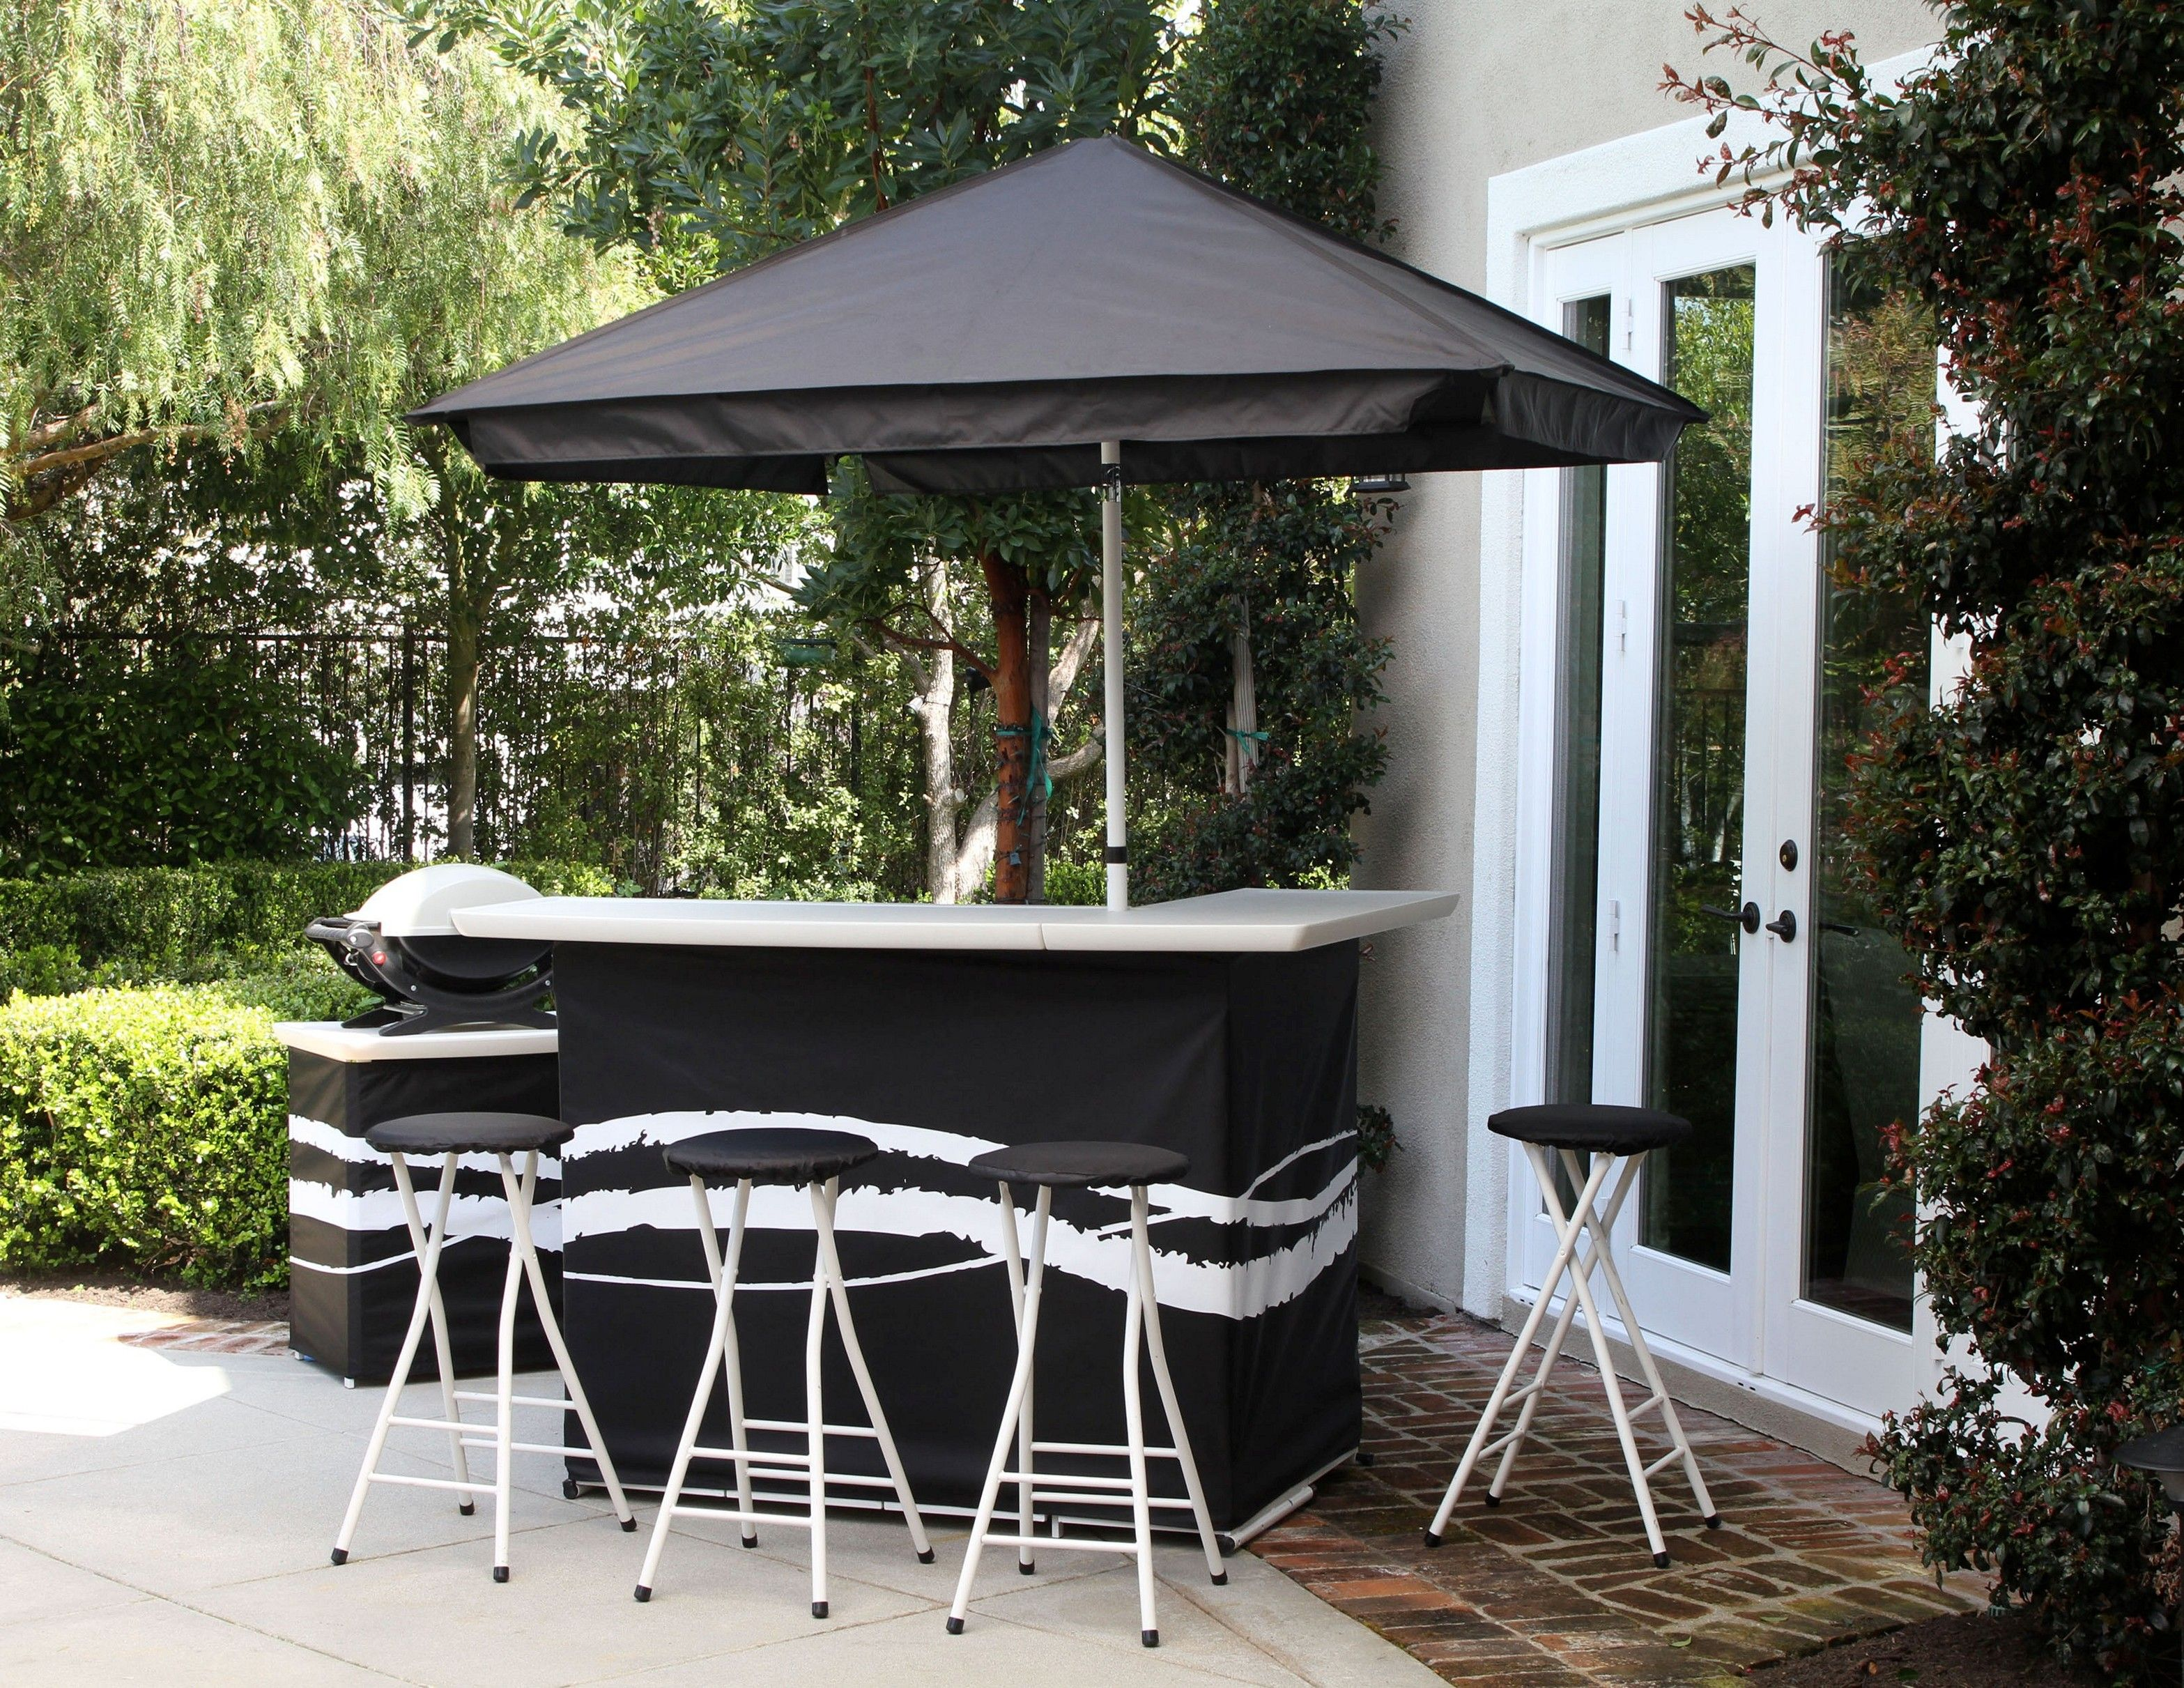 outdoor wid east set op garden bars portable sharpen spin what pc bar and hei cart prod furniture patio oasis is point